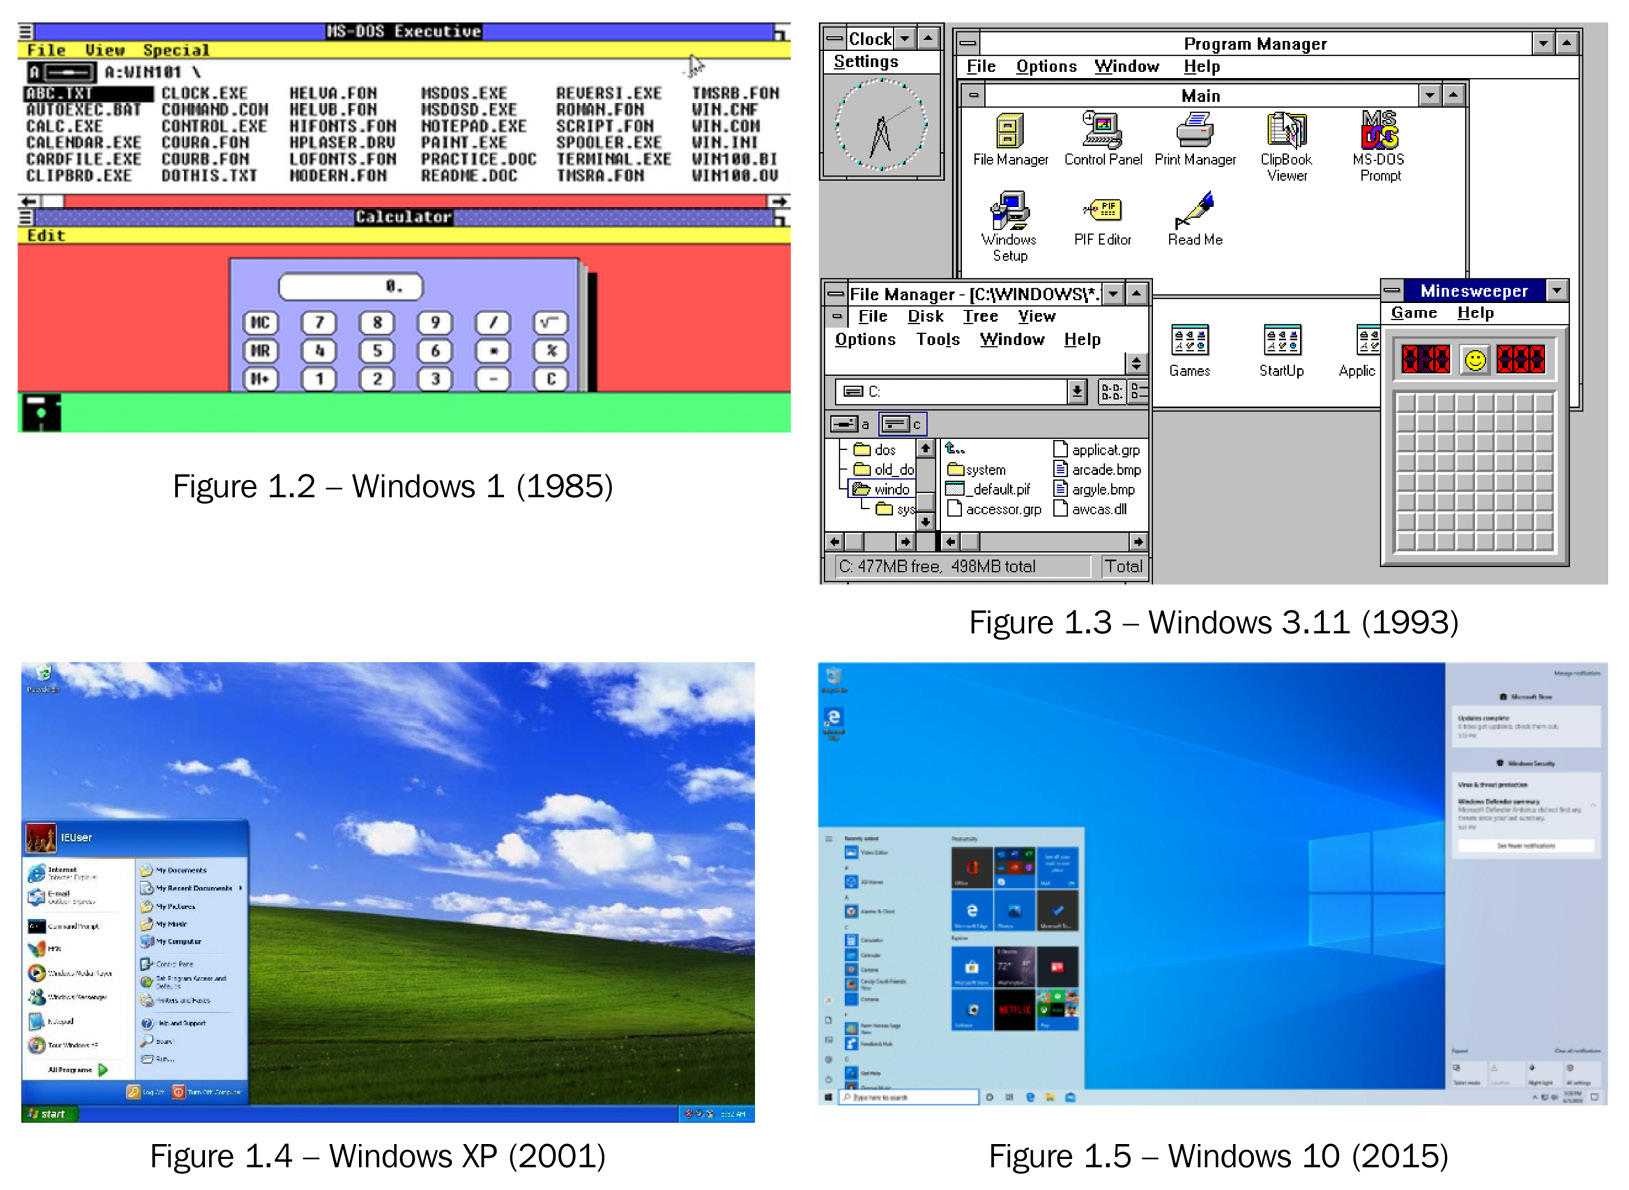 The copyright for all screenshots belongs to Microsoft. Each image used with permission